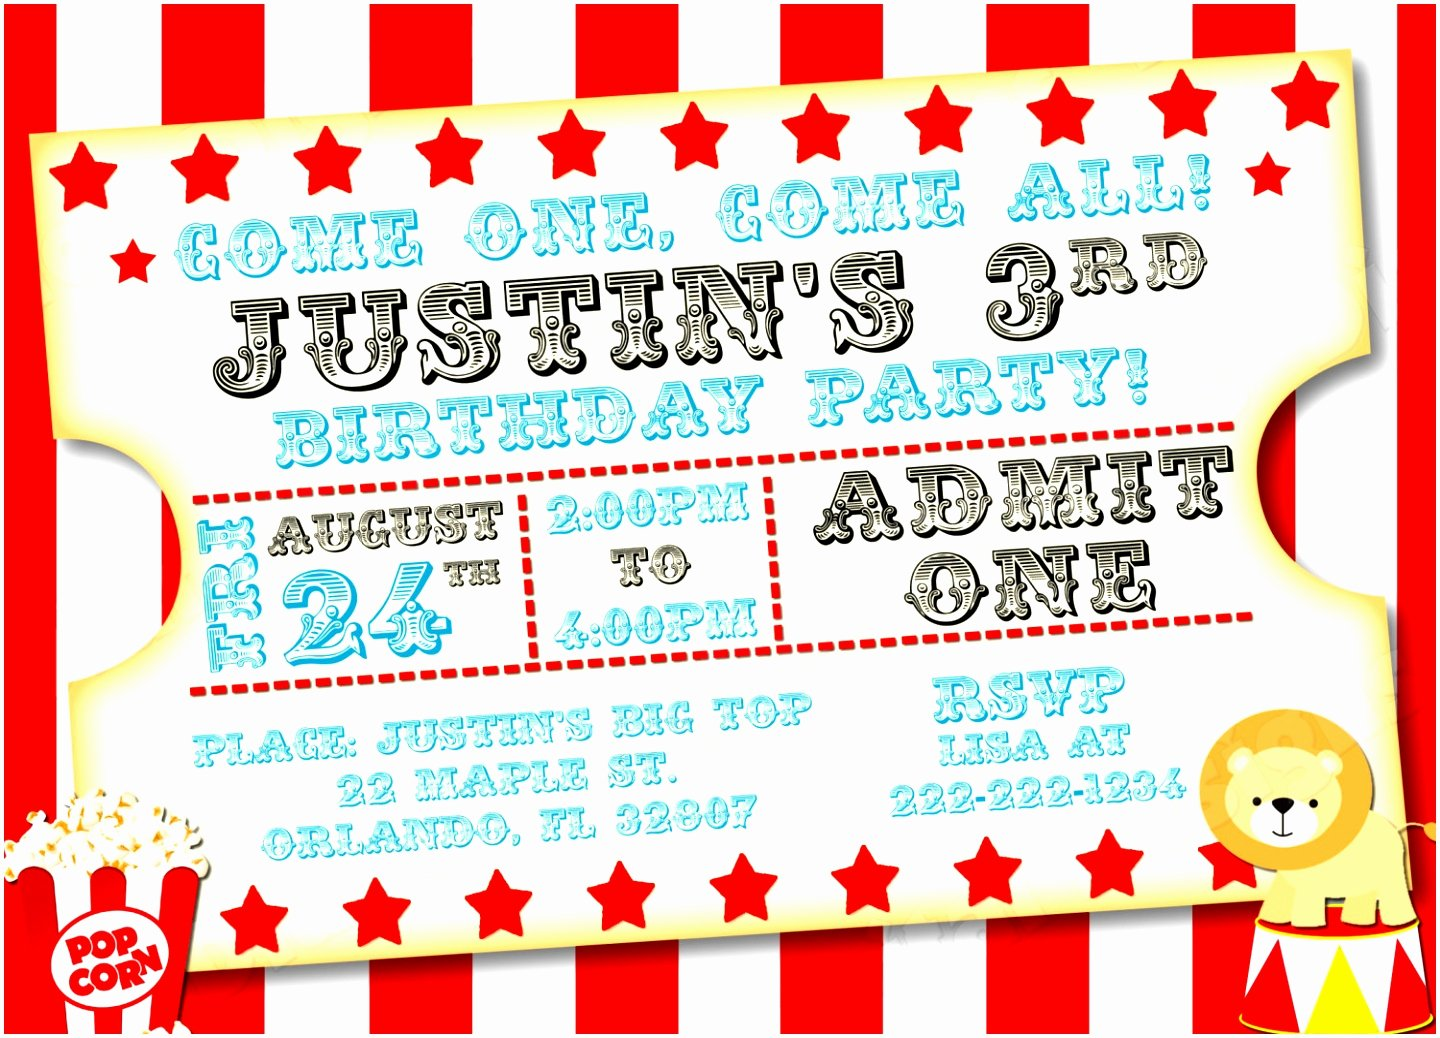 Carnival Invitation Templates Free Inspirational 7 Carnival Party Invitation Templates Opttt